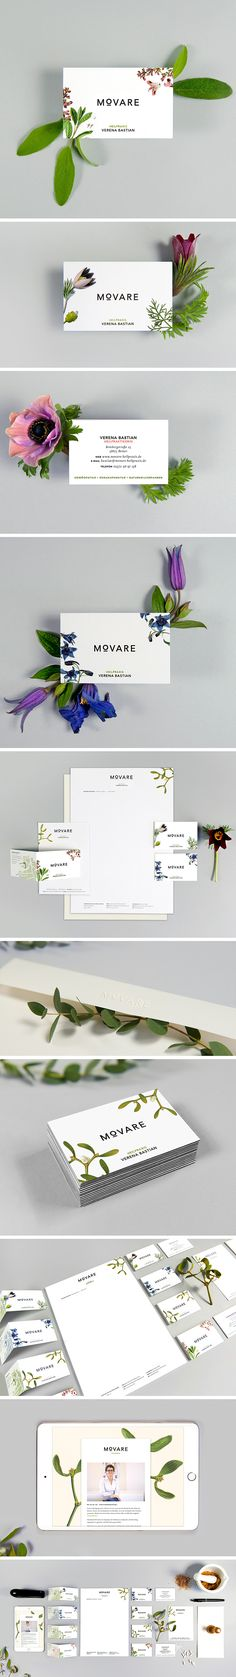 Corporate Design für MOVARE | Editorial, Logo, Signet, Briefschaft, Business…